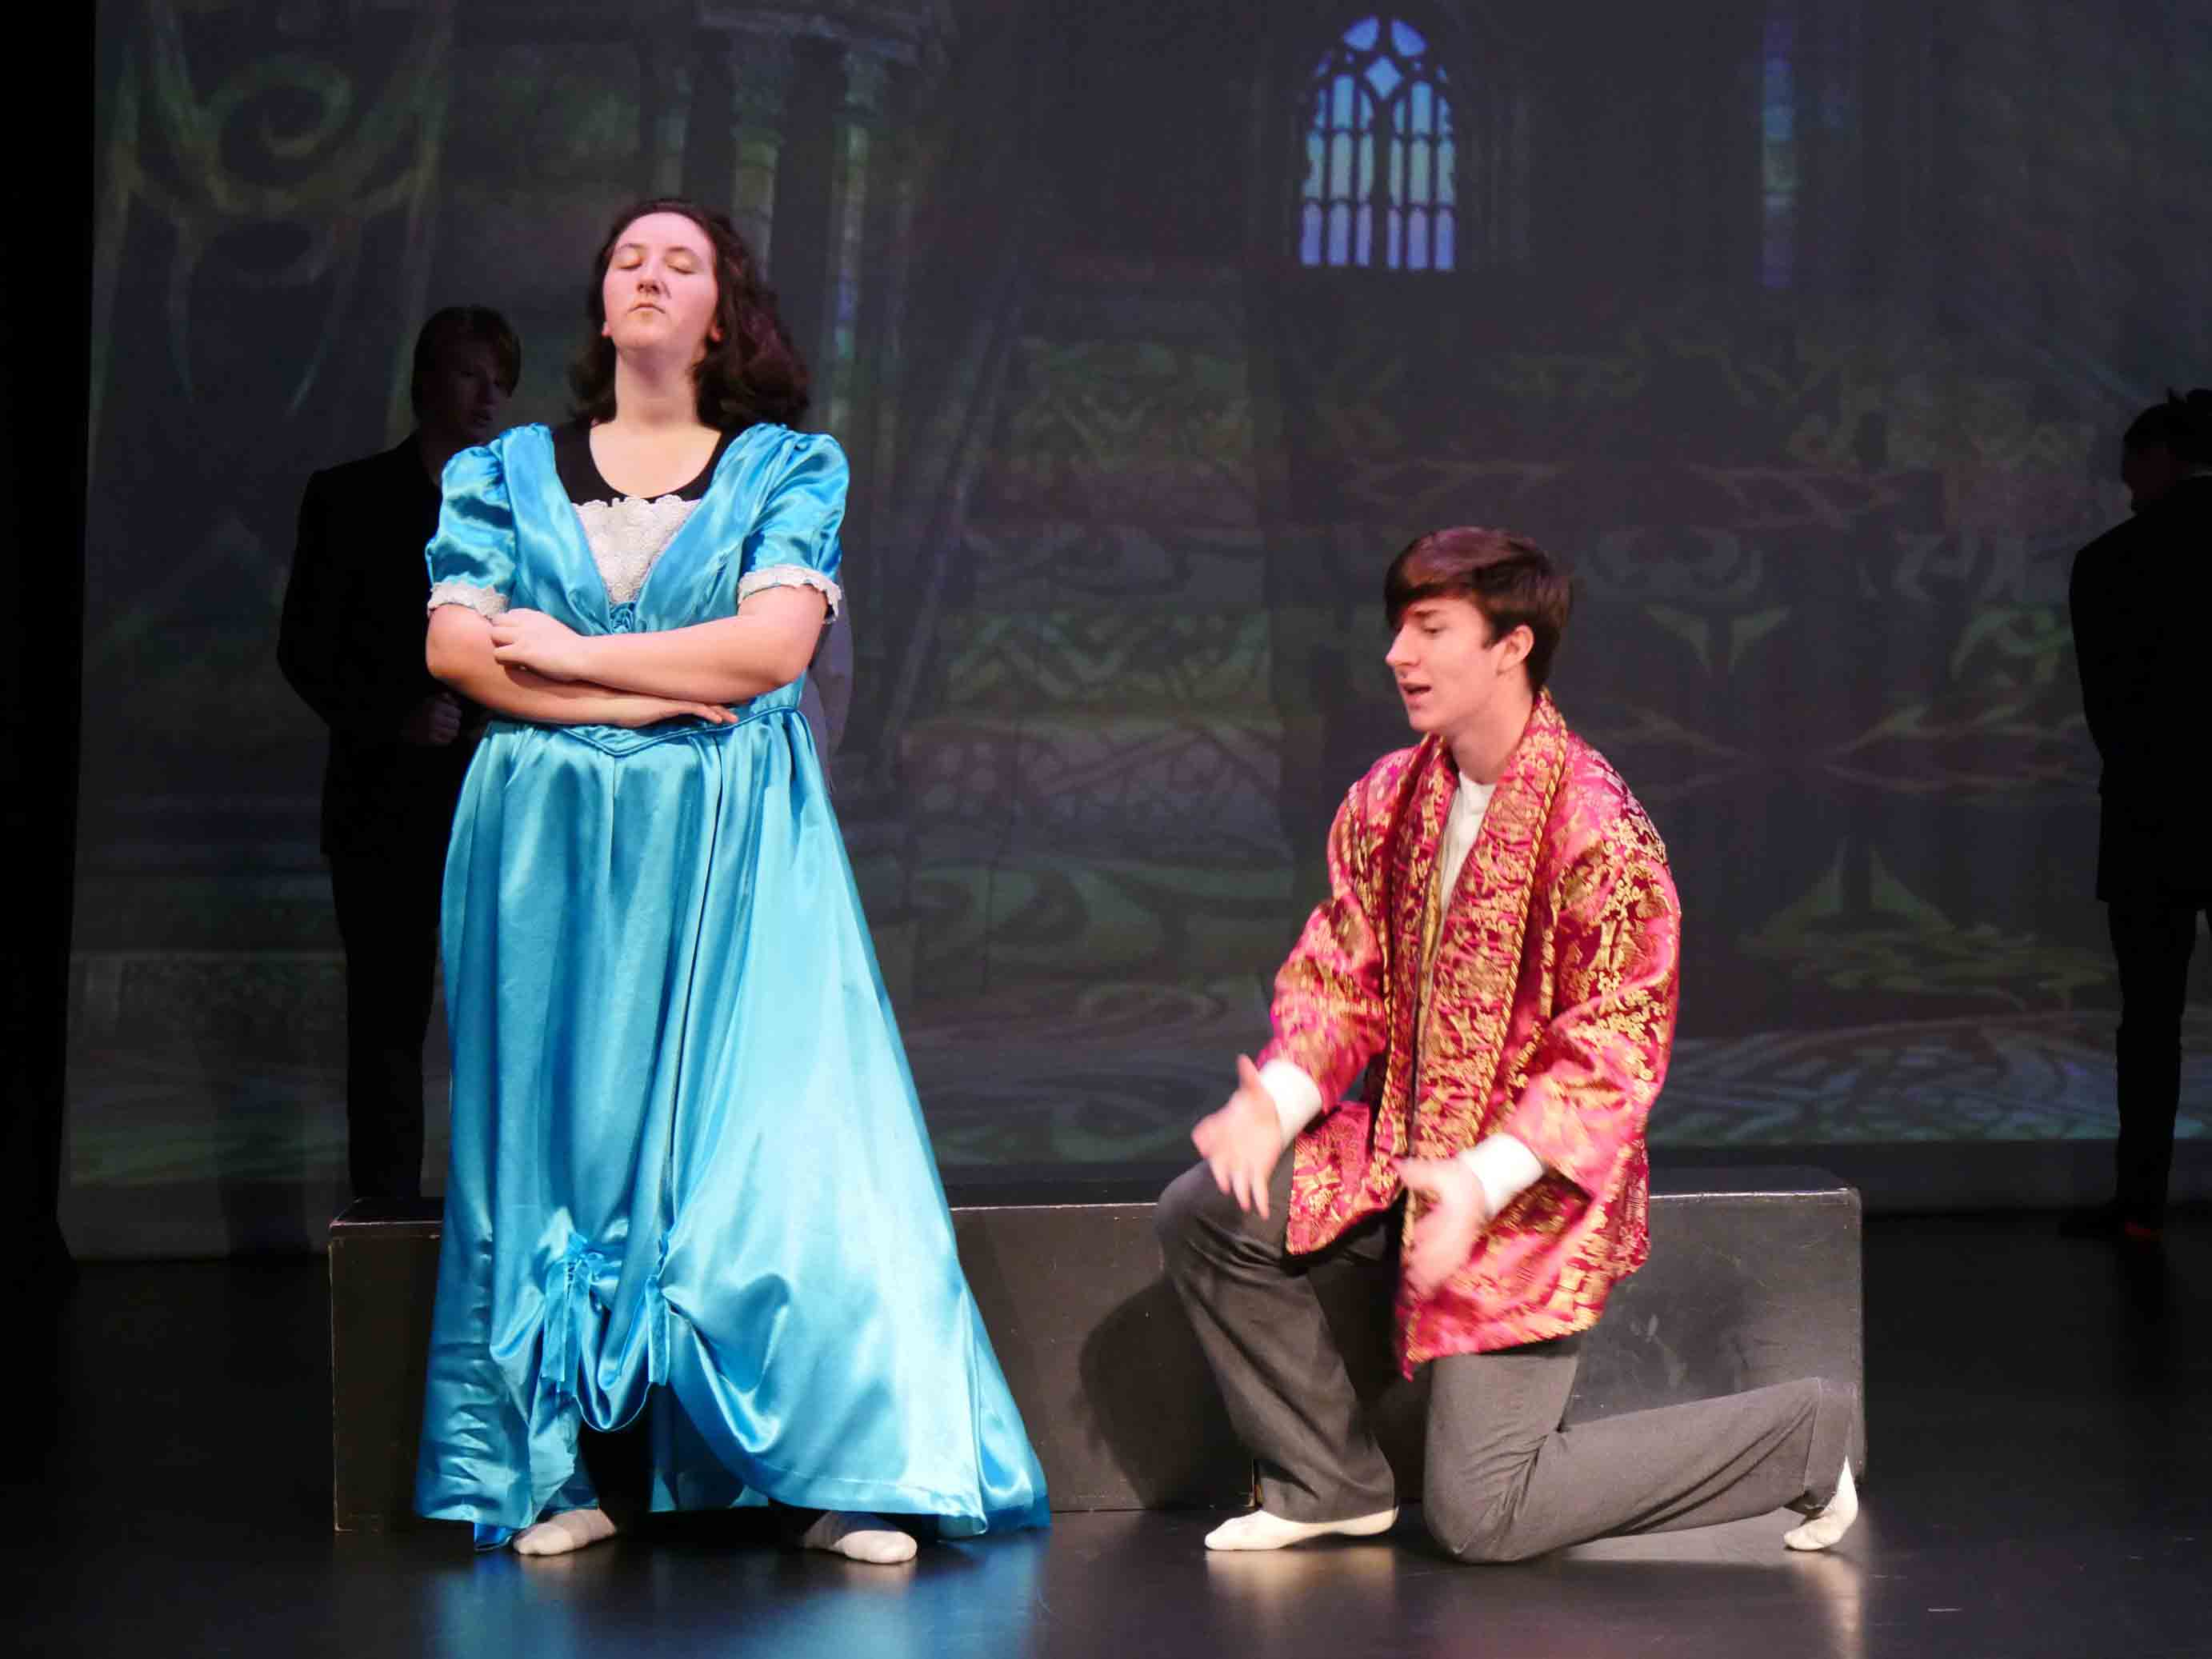 20 Saint-Kentigern-Senior-College-Year-12-NCEA-Drama-Assessment Rosencrantz.jpg